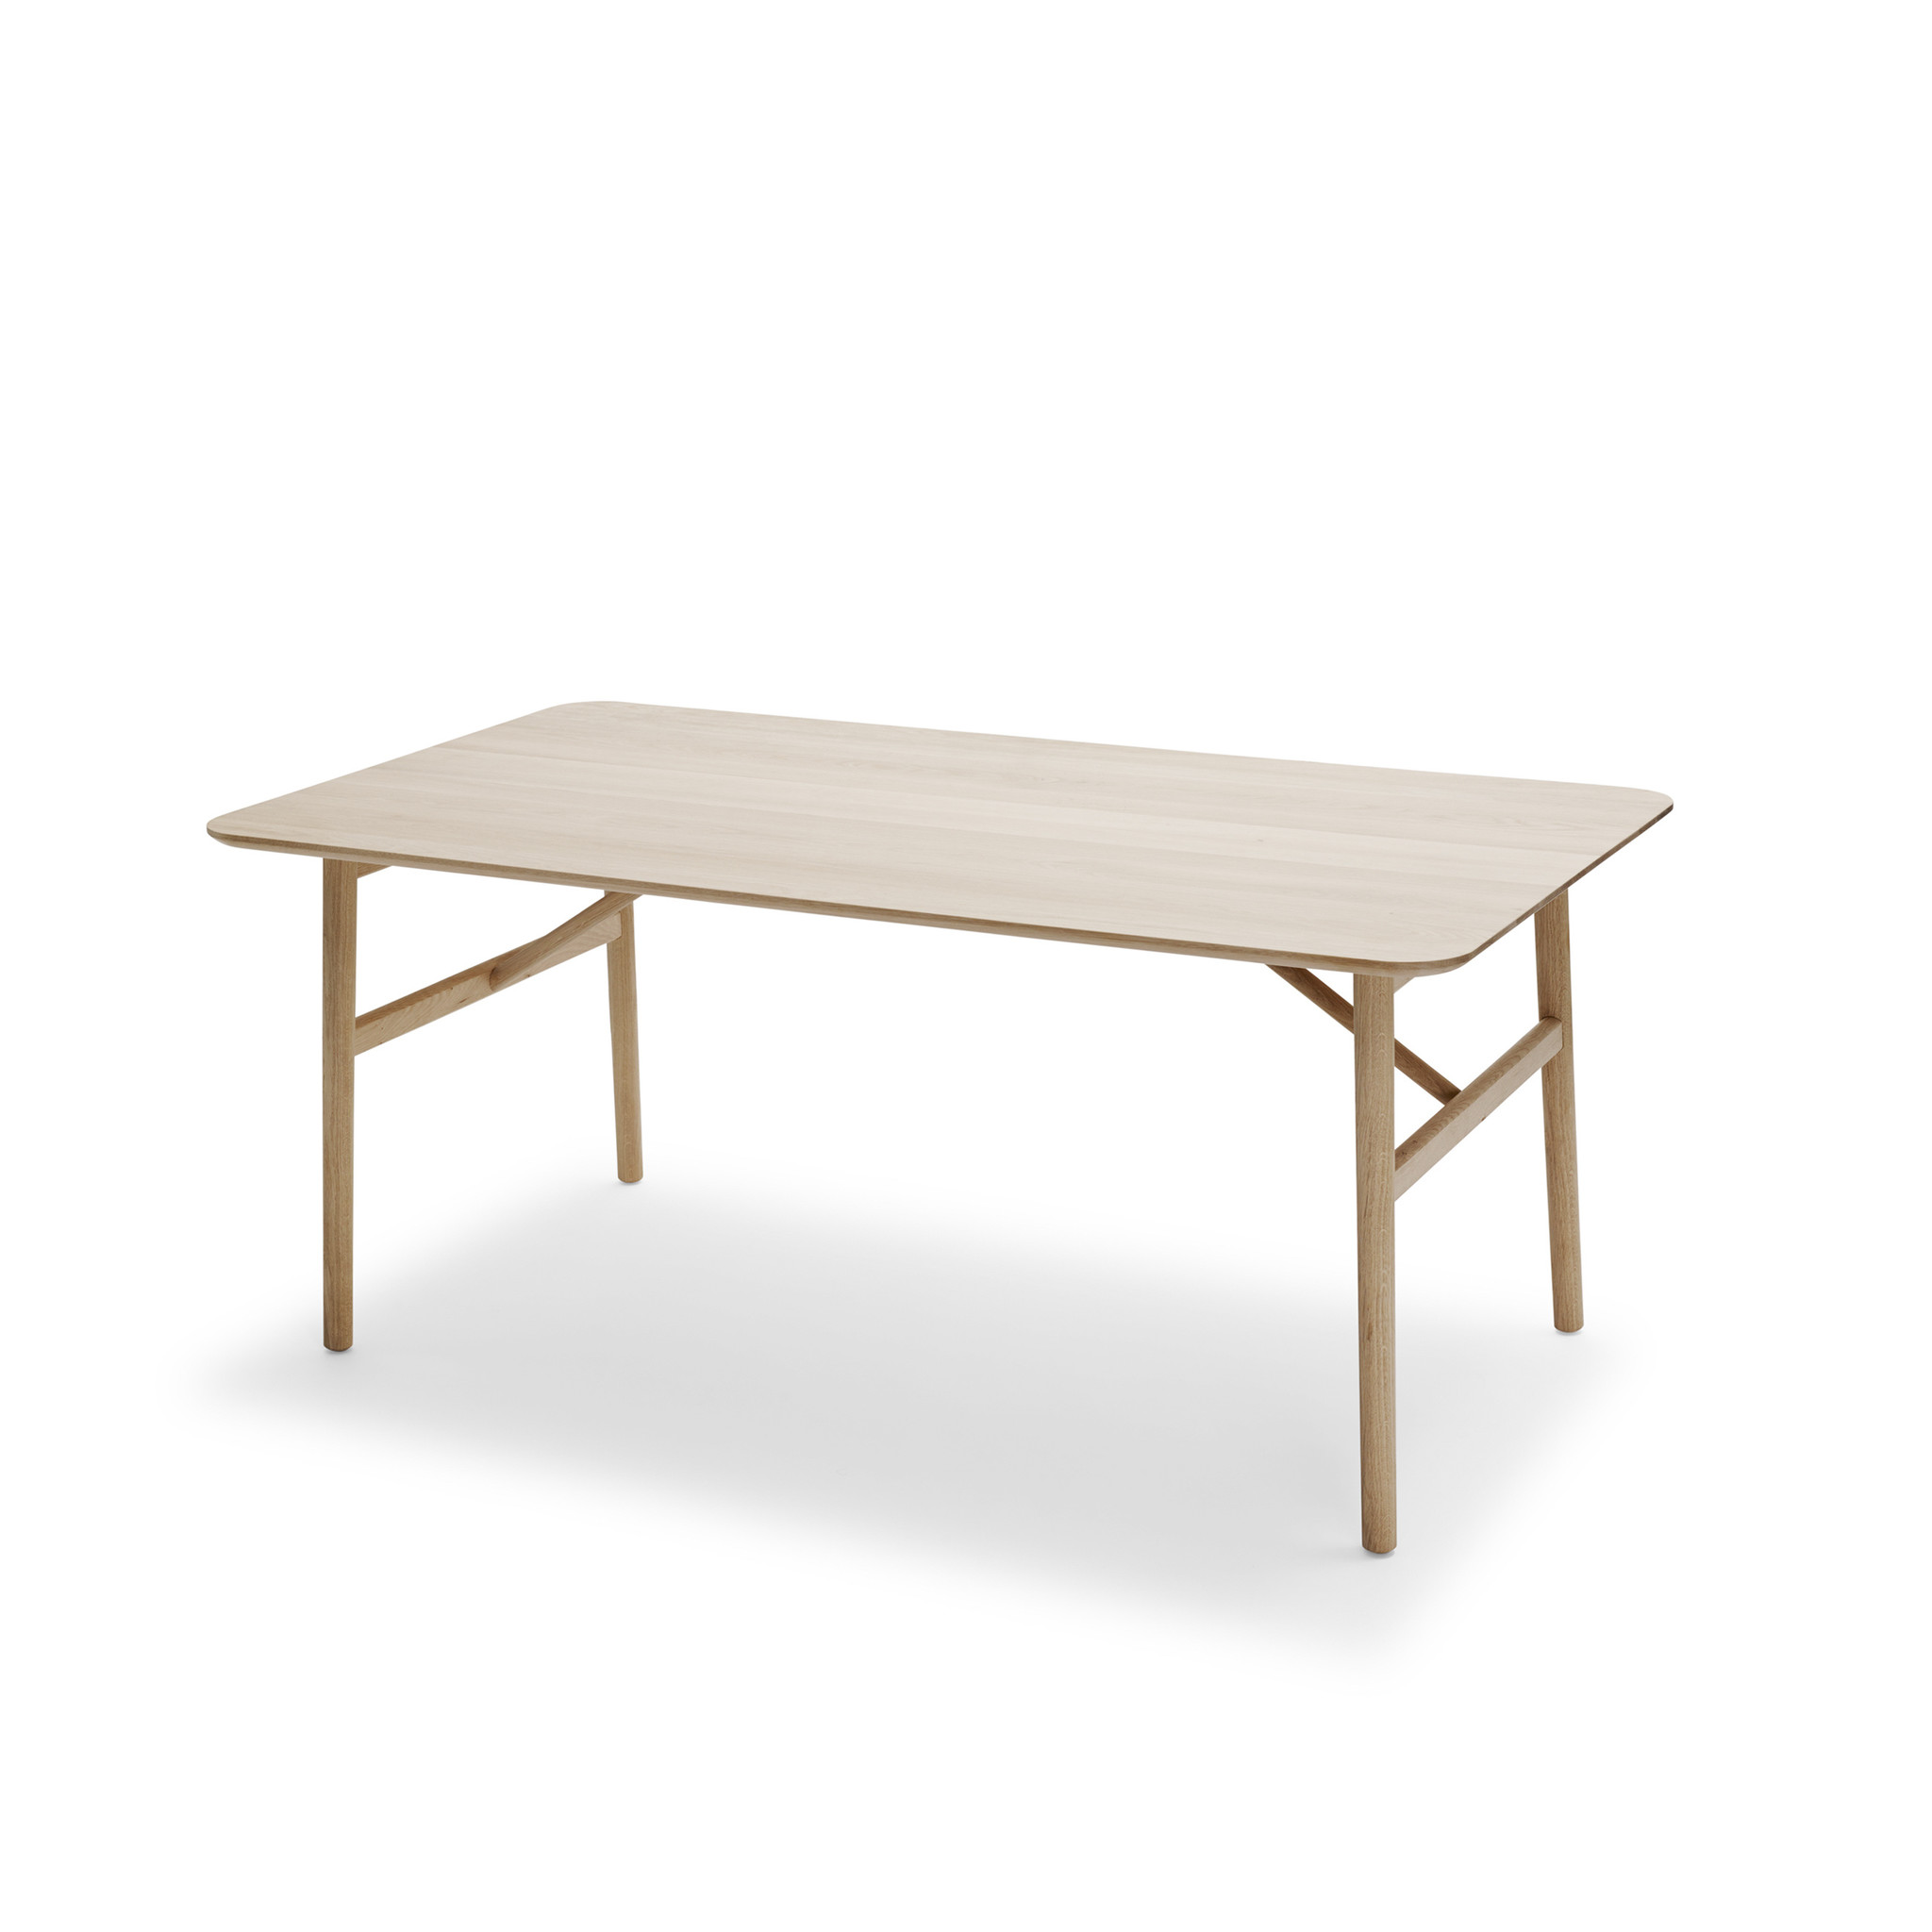 Peachy Hven Small Dining Table Oak Oil Treatment Home Interior And Landscaping Ferensignezvosmurscom